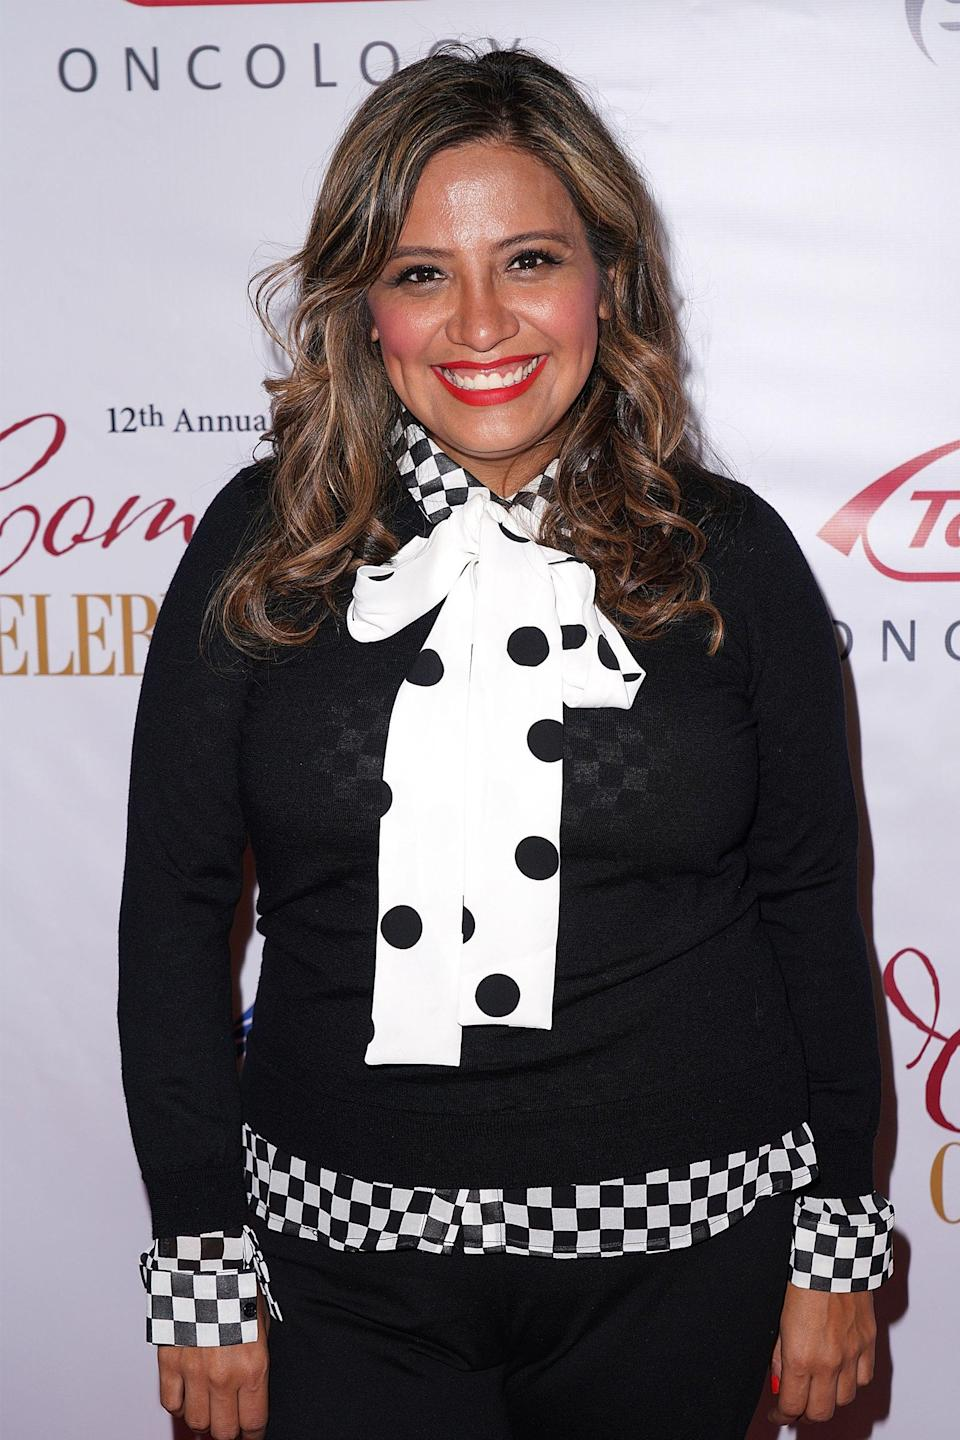 """<strong><h2>Cristela Alonzo Is The Voice Of Hester</h2></strong> <br> <strong>Who Is Hester?<br></strong>Lee Scoresby's dæmon who takes the form of an arctic hare. Just like Lee, Hester is dry and funny and incredibly hard on herself. <br> <br> <strong>Where You've Seen Alonzo<br></strong>Even if you don't know the name Cristela Alonzo off the top of your head, you've probably at least heard her before considering she's a stand-up comedian and voice actress. She was the star (and created, wrote, and produced) <em>Cristela</em> and is part of the <em>Cars</em> universe, in which she voices Cruz Ramirez. <br> <span class=""""copyright"""">Photo: JC Olivera/Getty Images.</span>"""